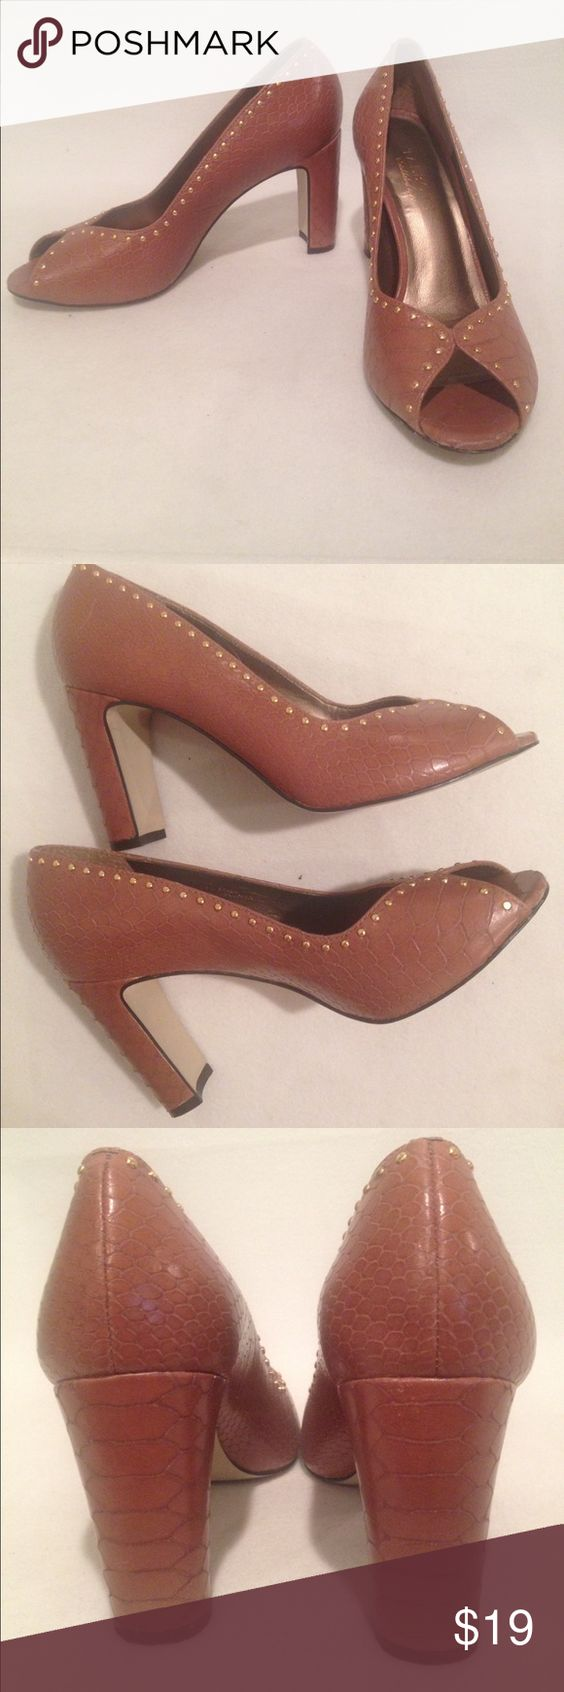 EUC TALBOTS Women's Heels Pumps Genuine Leather Perfect for the autumn! Gold Studs Brown Tan Leather Snake Pumps Heels. Peep Toe  Condition: Worn only once. In EUC condition, one very small scuff on the upper right as shown in the pictures. Barely noticeable.   Material: genuine leather Size: women's 7B  Heel height: 3 inch  Color: Tan / brown with gold studs Talbots Shoes Heels